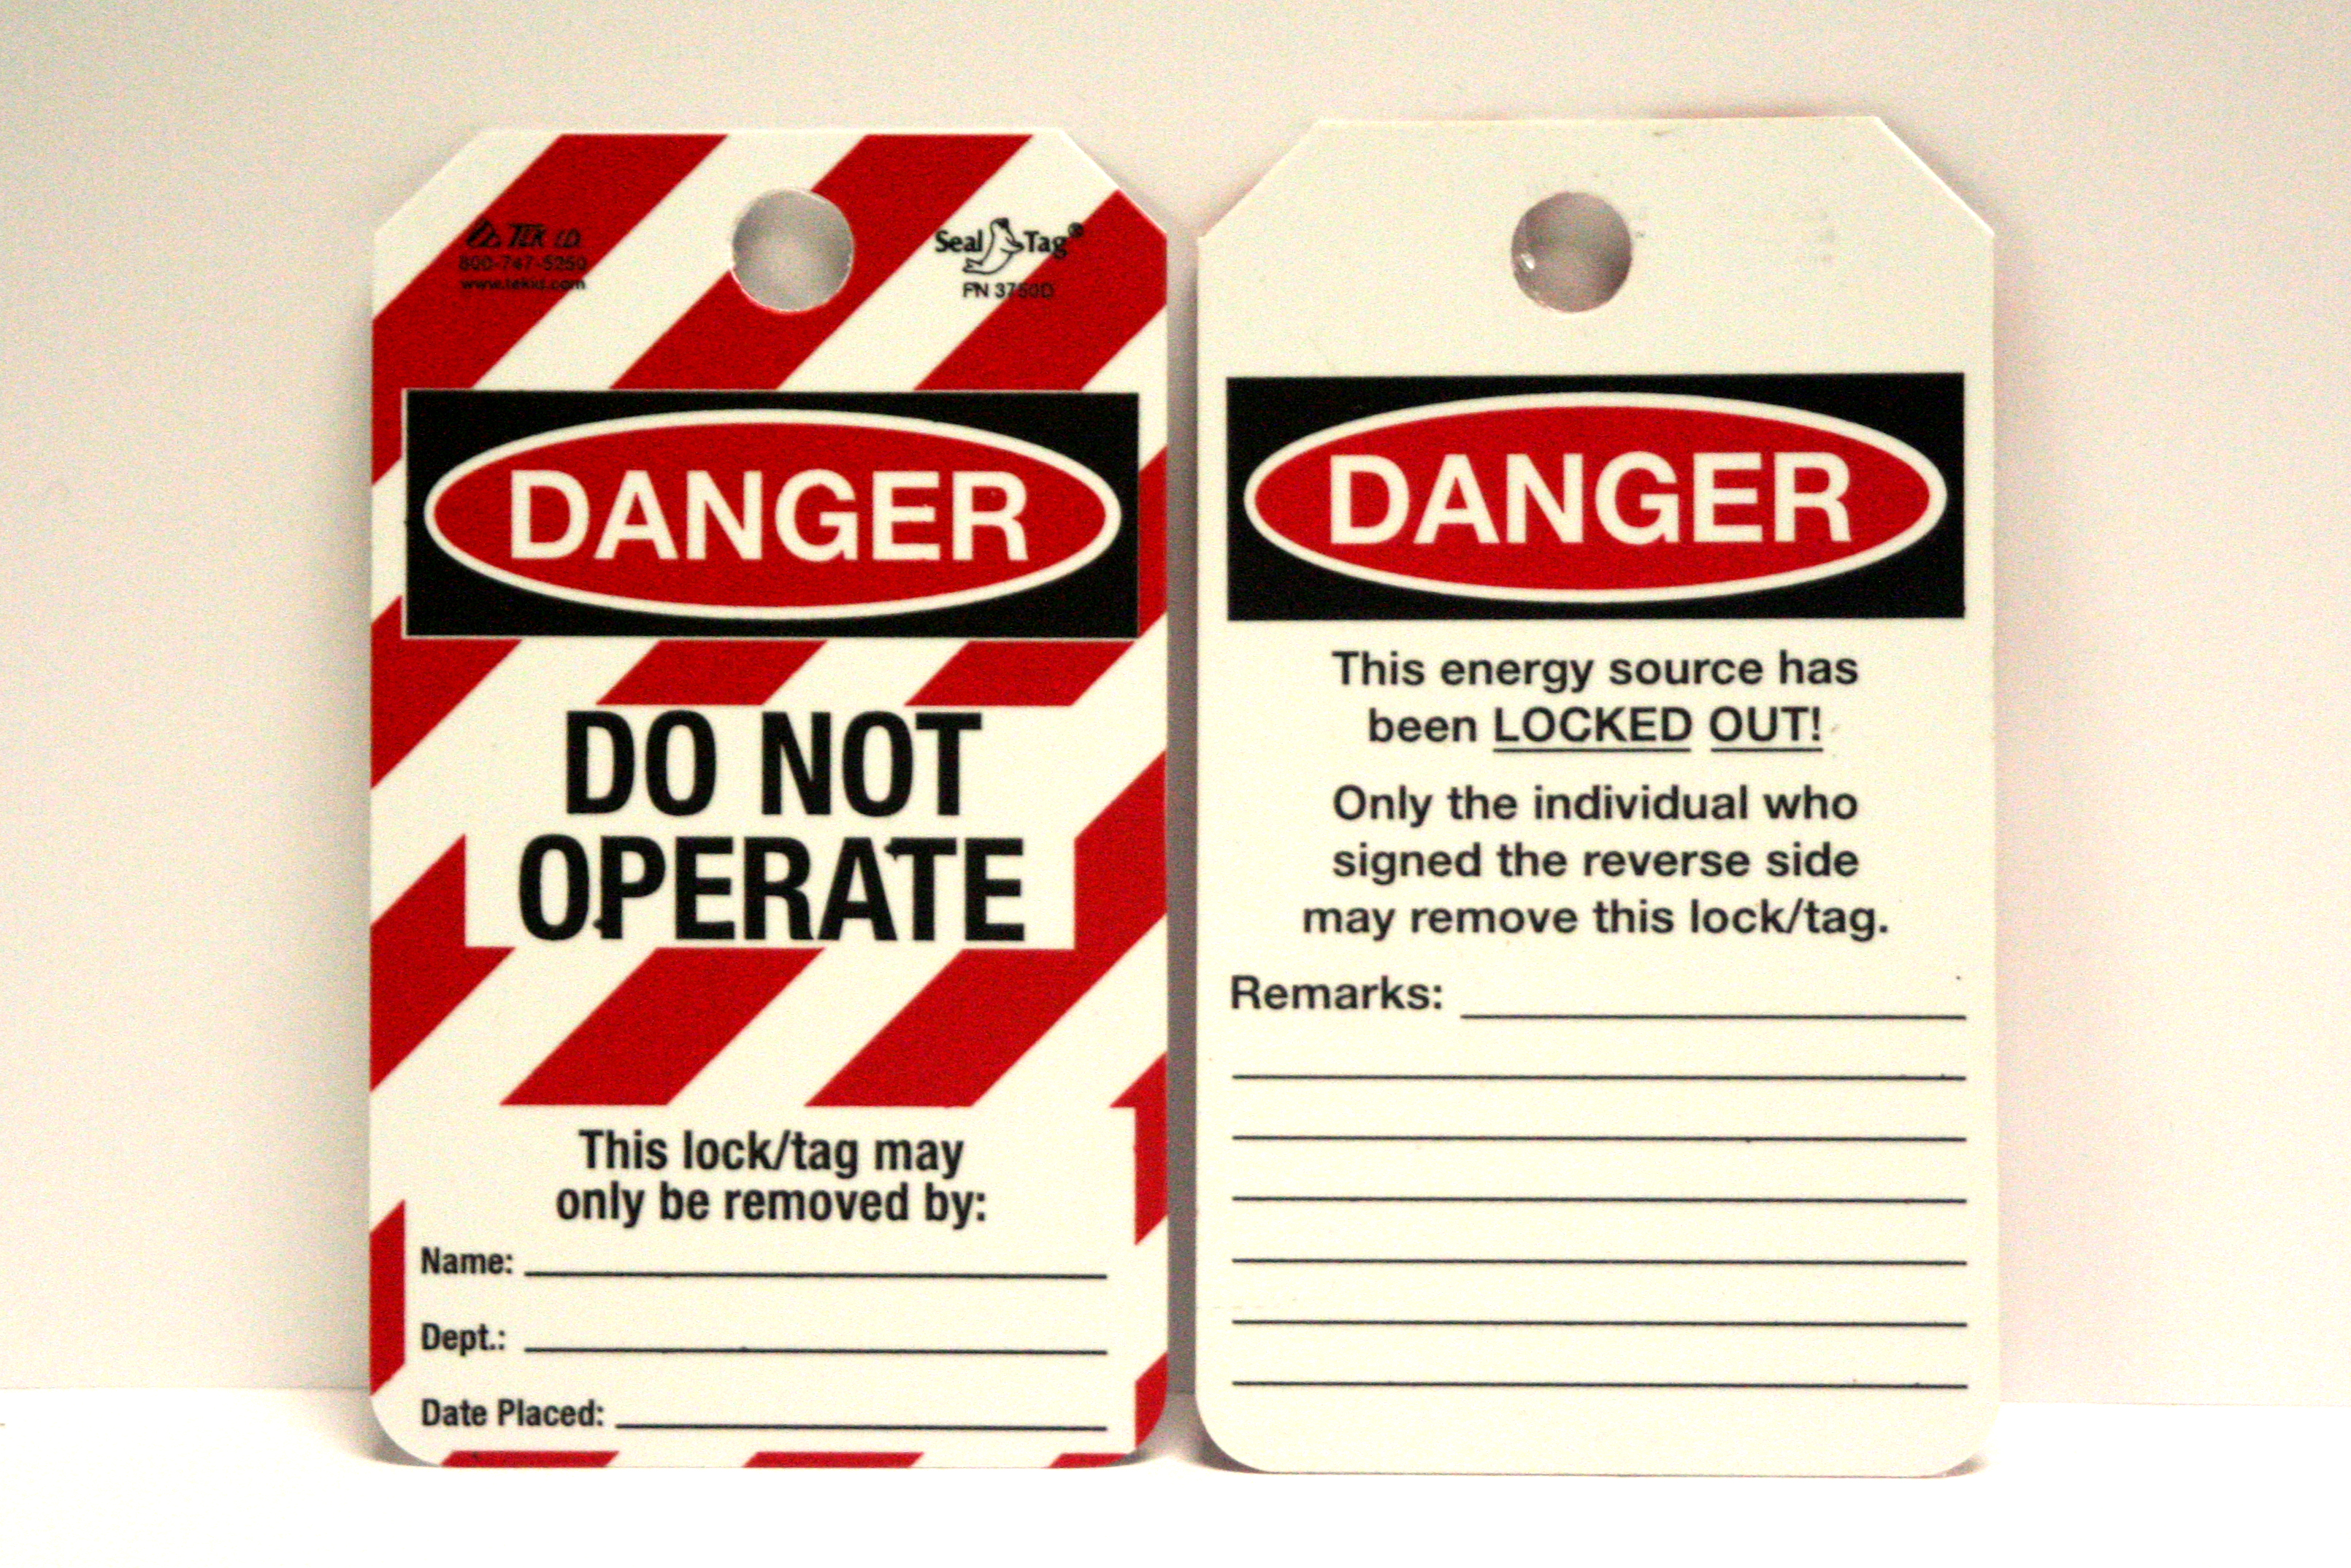 danger, do not operate, individual, tag